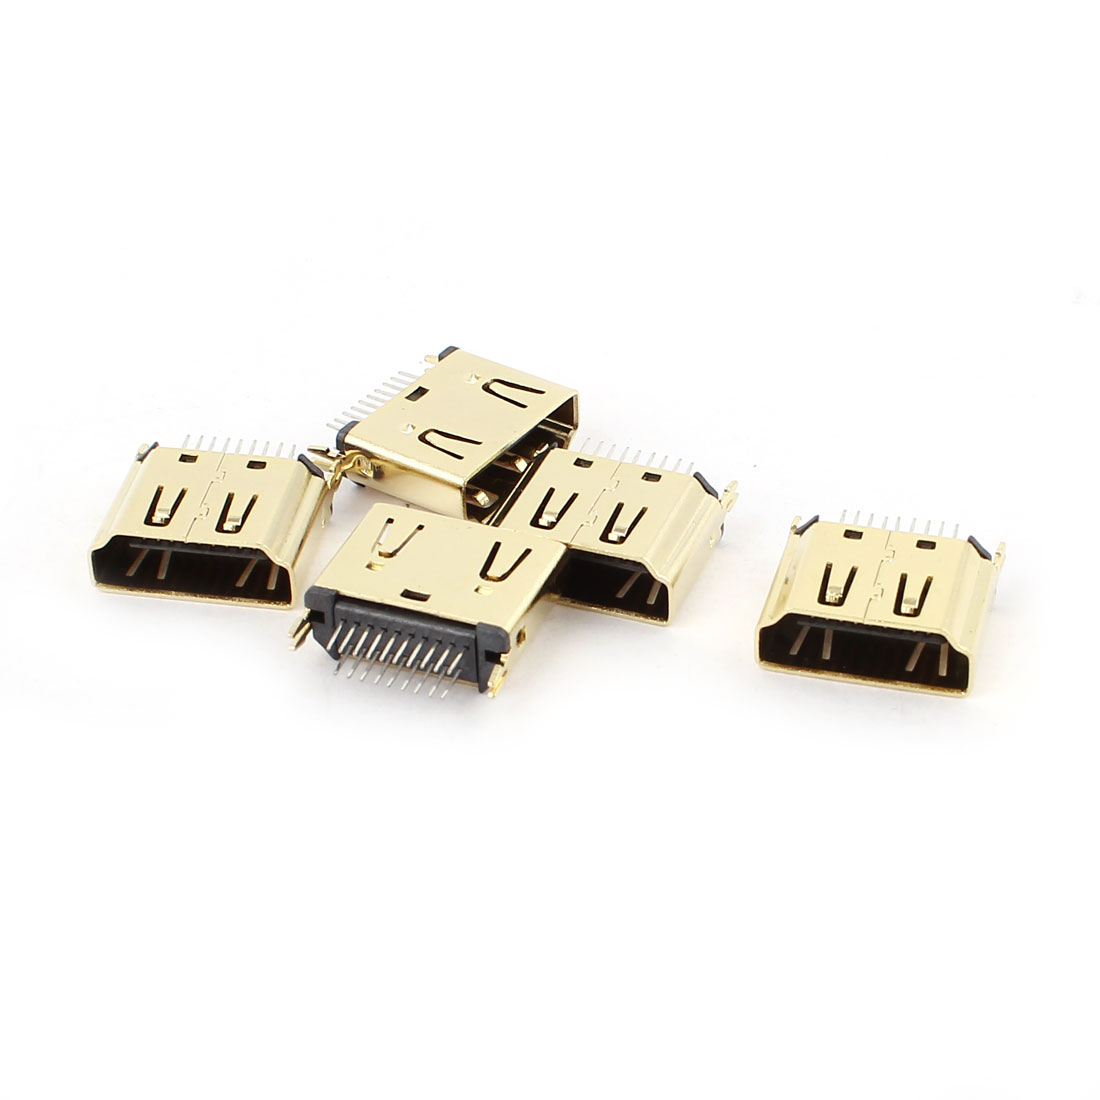 5Pcs Gold Tone Mini HDMI Female 19 Pins 4 Legs DIP Connectors